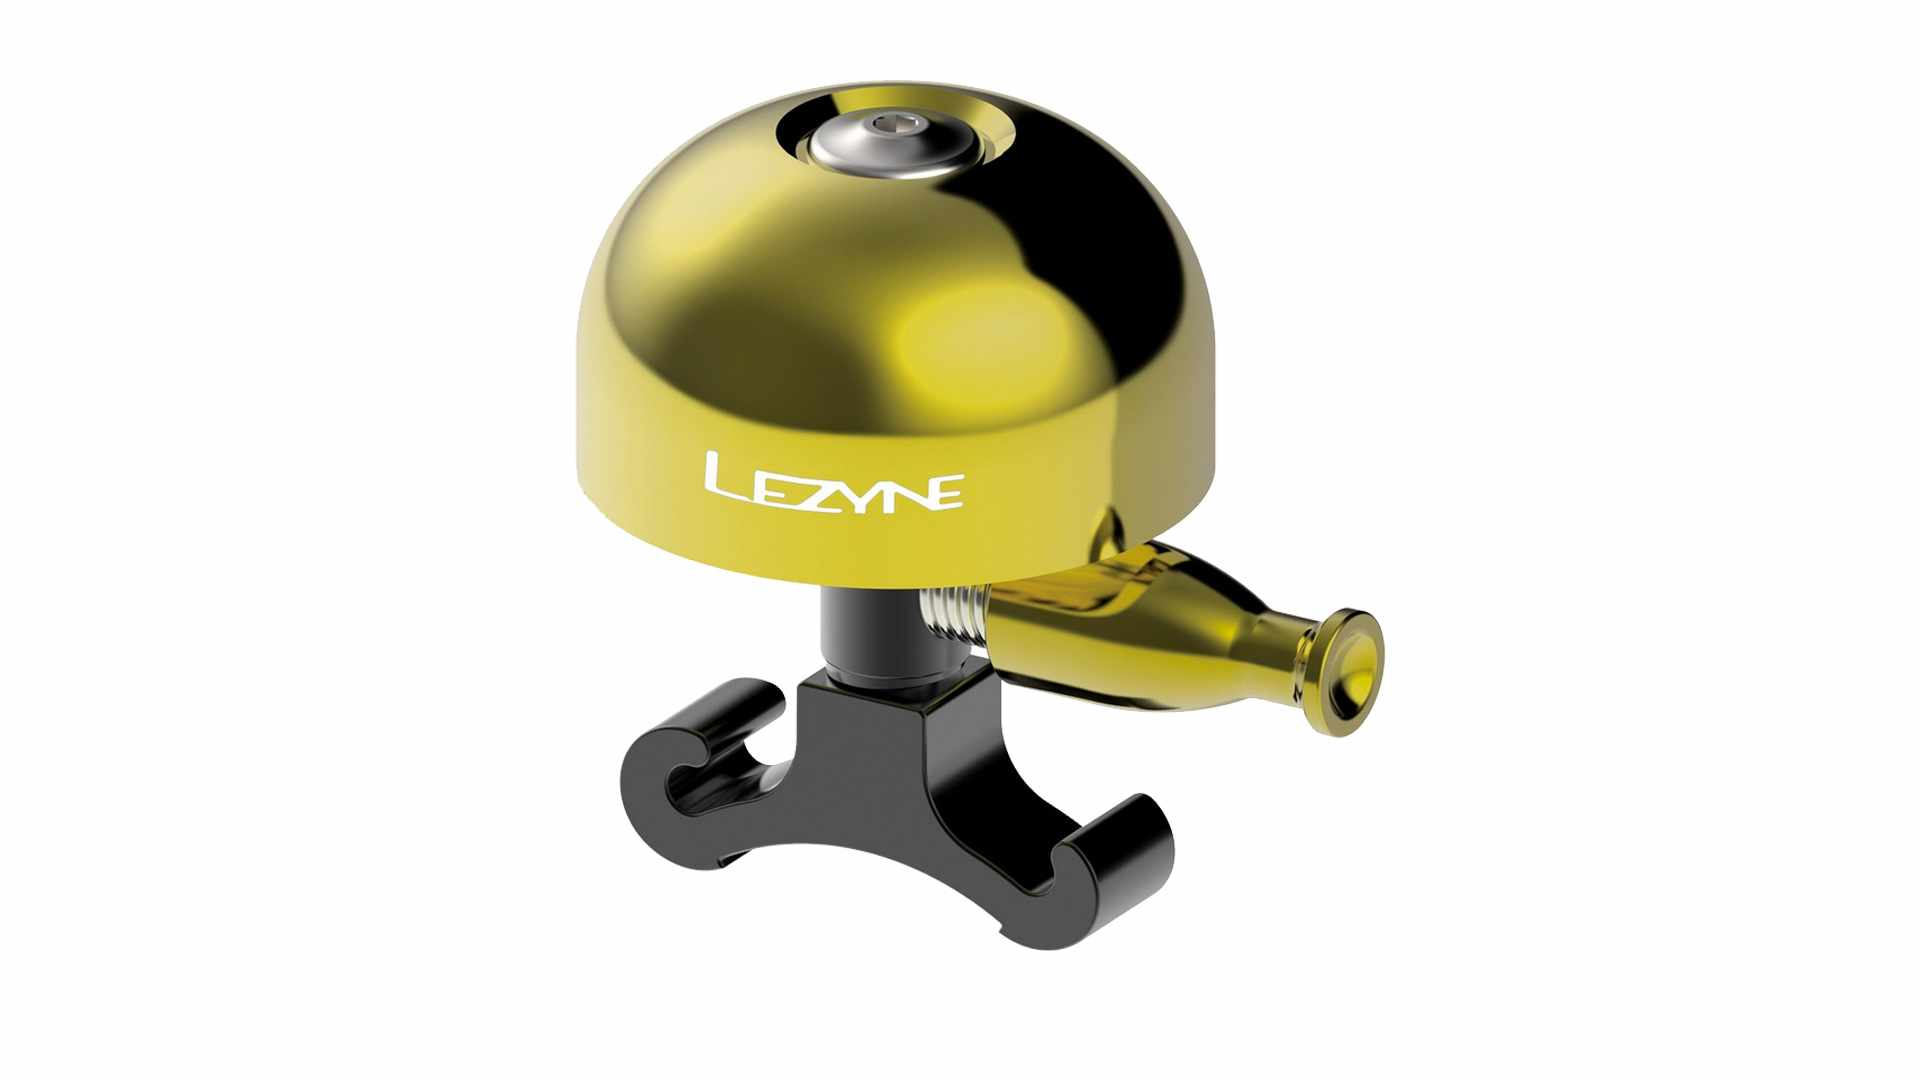 Image of a yellow Lezyne bicycle bell on a white background